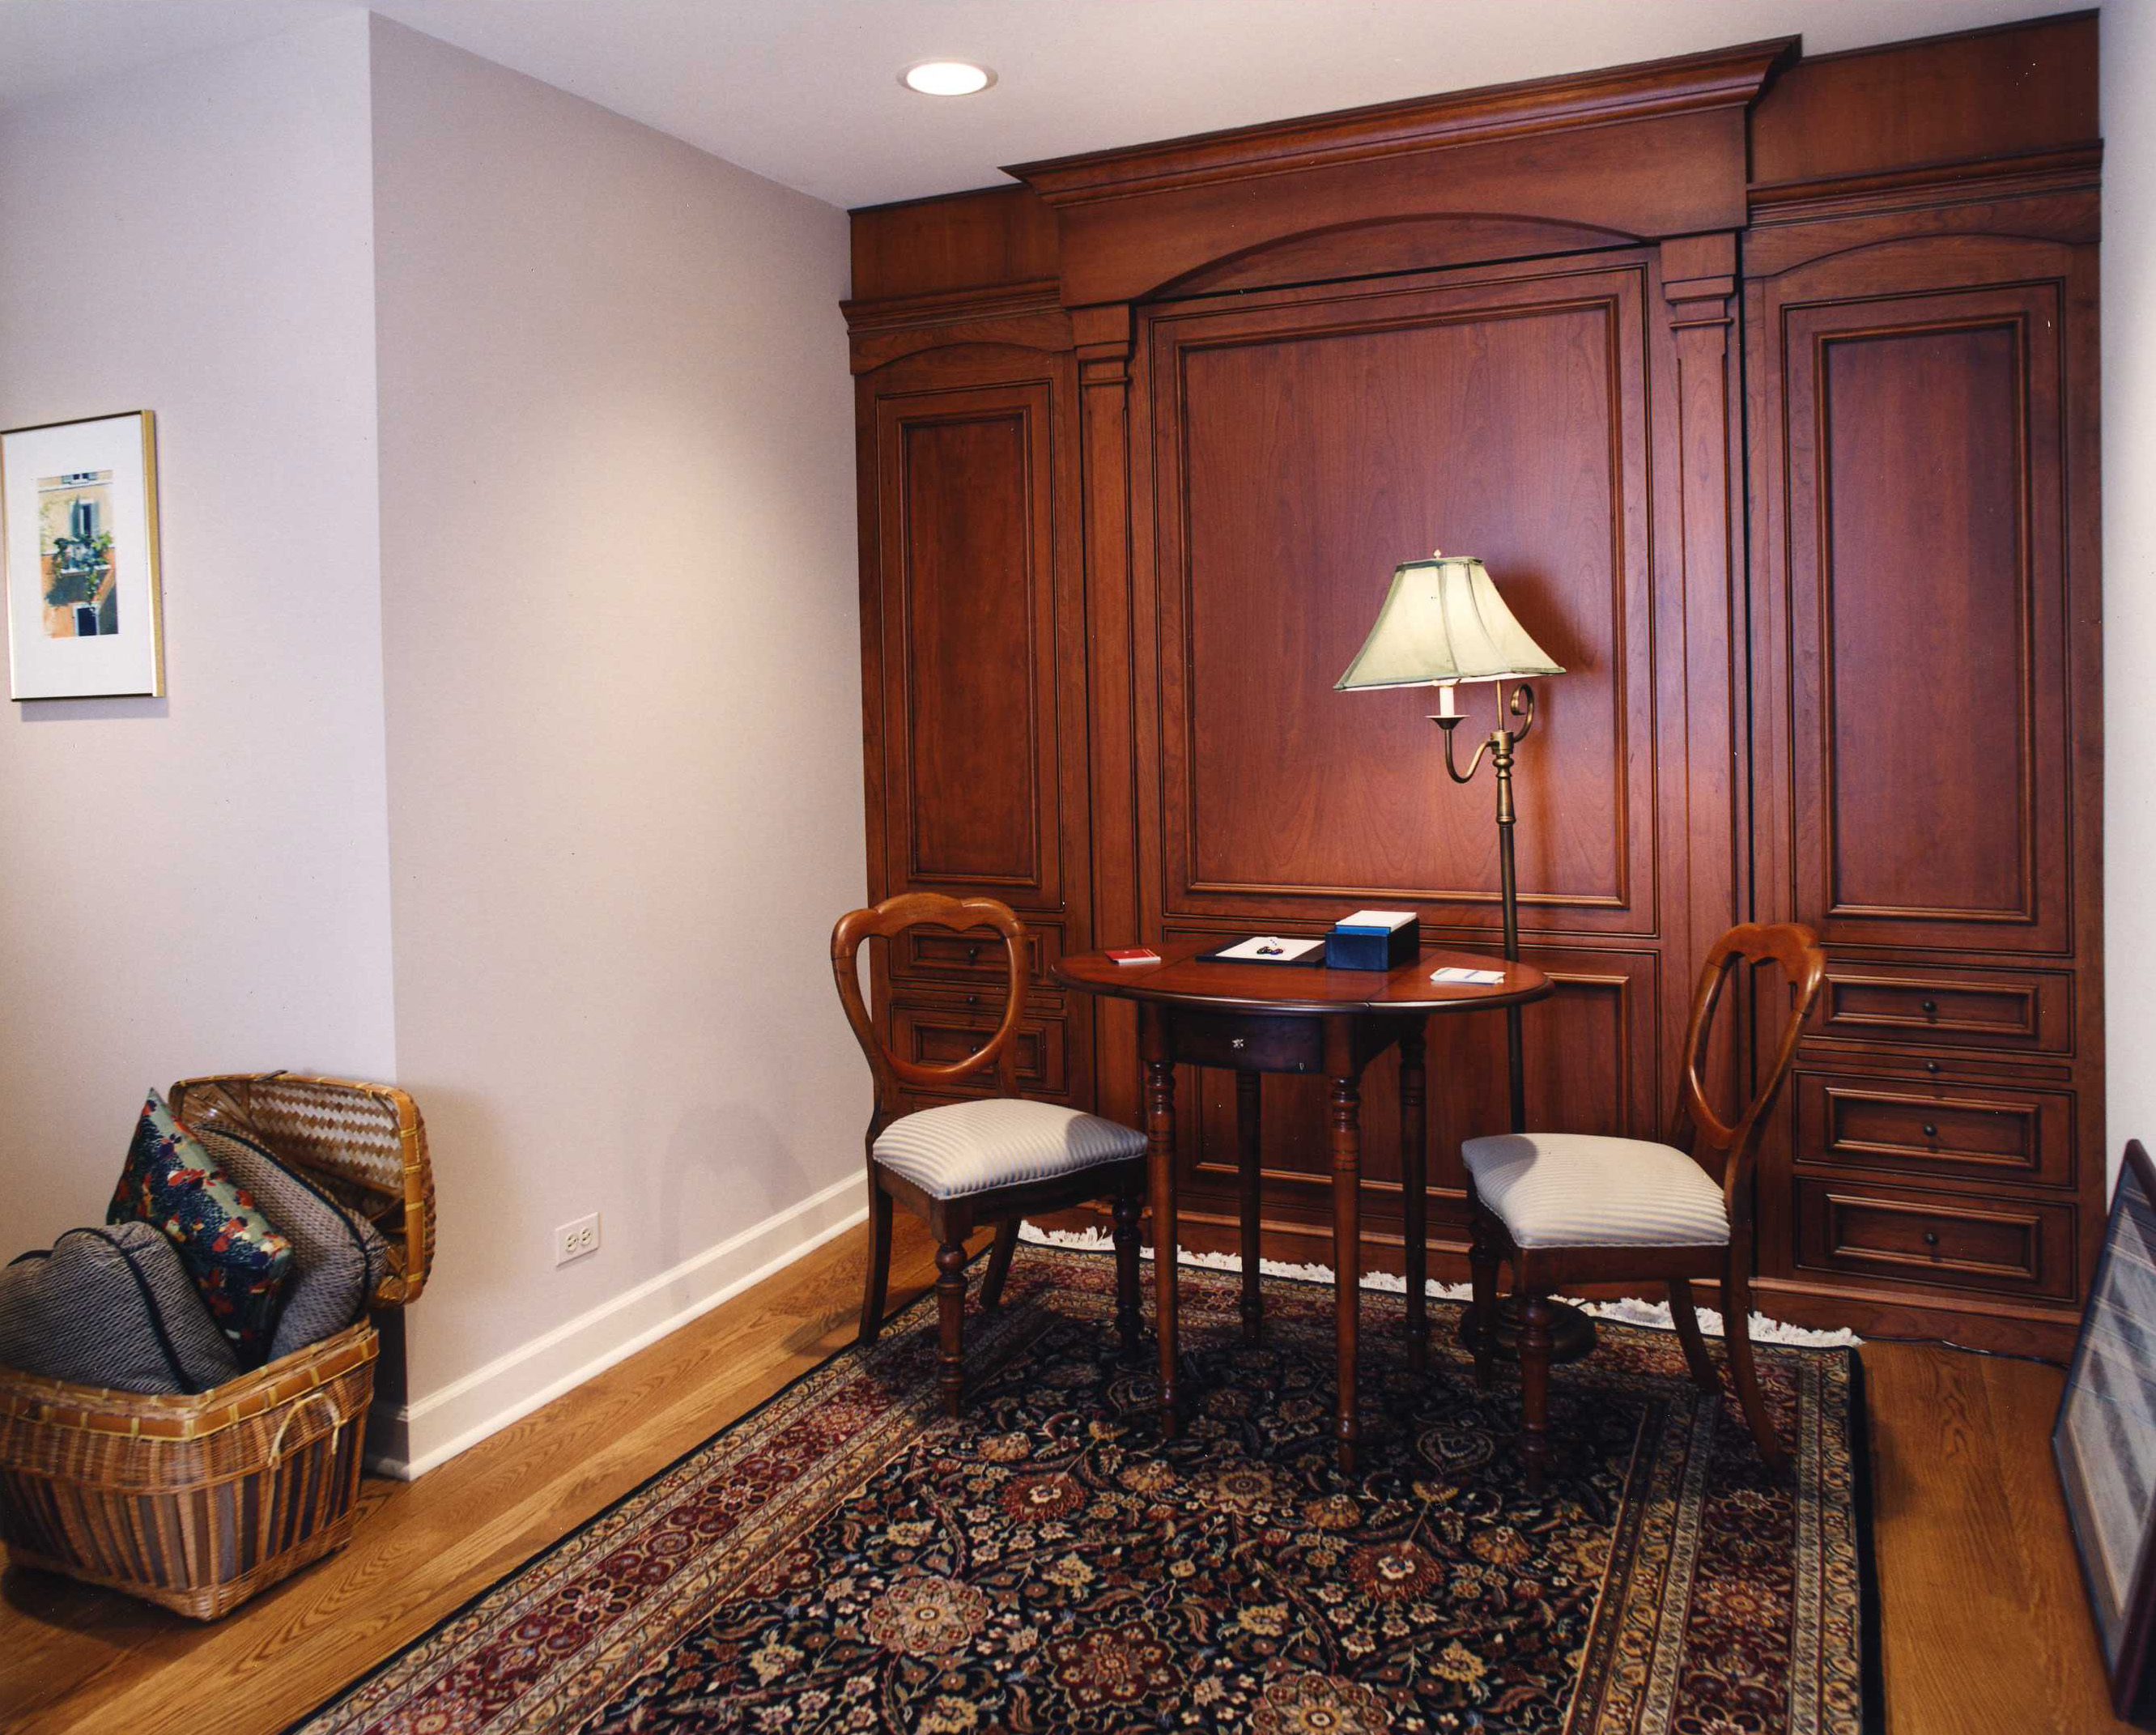 78 Woodley - Concealed Murphy Bed